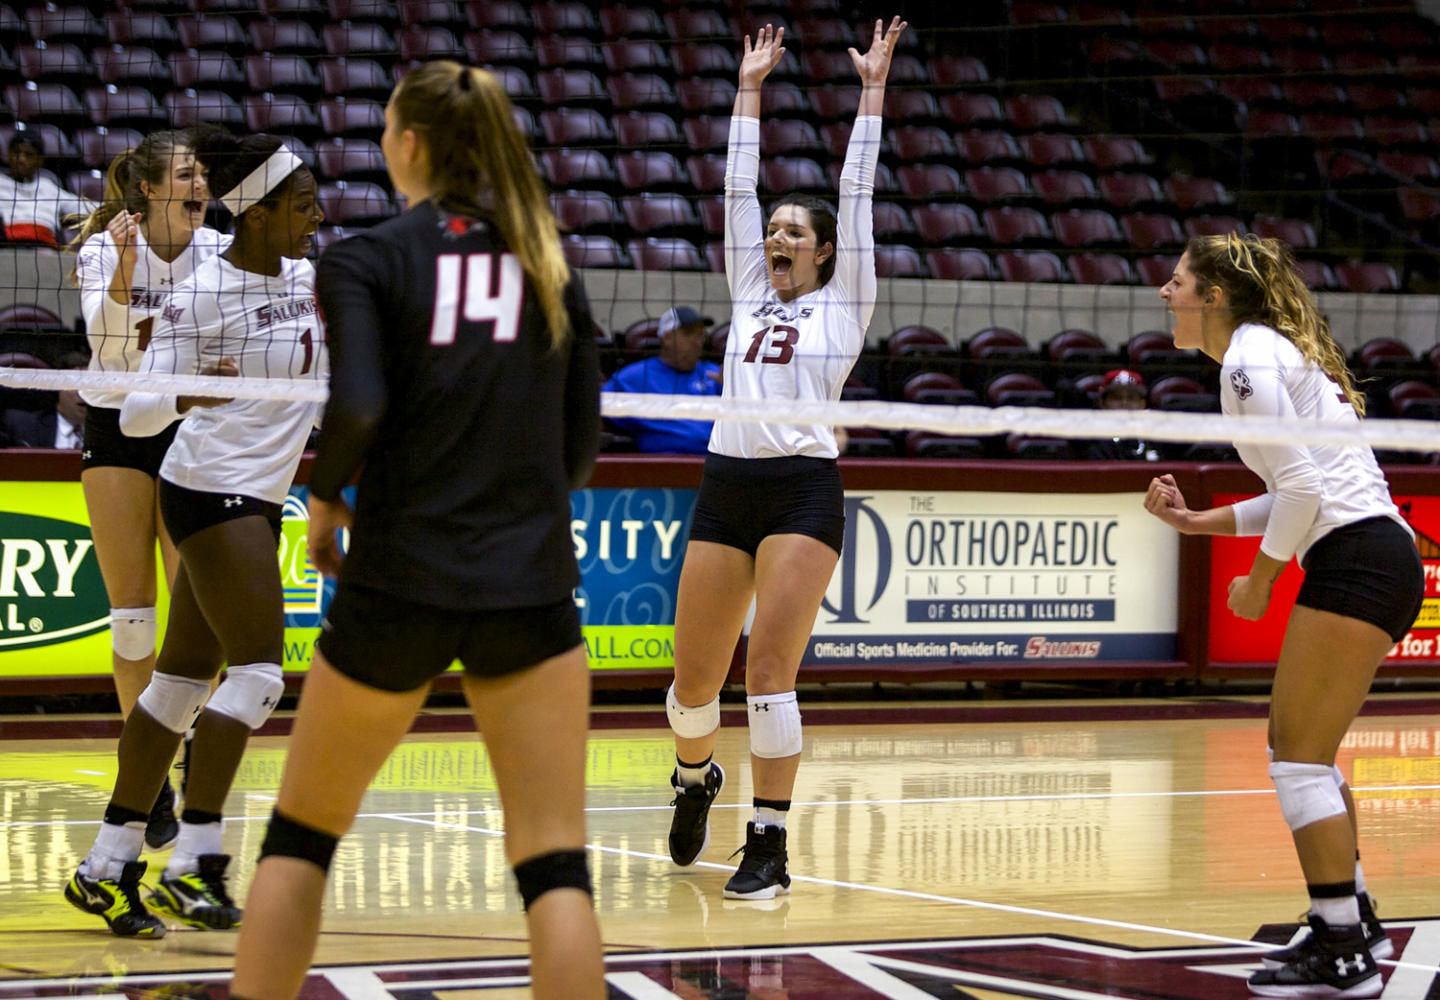 Freshman+setter+Rachel+Maguire%2C+13%2C+celebrates+with+her+teammates%2C+Tuesday%2C+Sept.+12%2C+2017%2C+during+the+Saluki%27s+home+game+at+SIU+Arena.+The+Salukis+beat+the+Redhawks+in+the+fifth+set%2C+15-13.+%28Mary+Newman+%7C+%40MaryNewmanDE%29